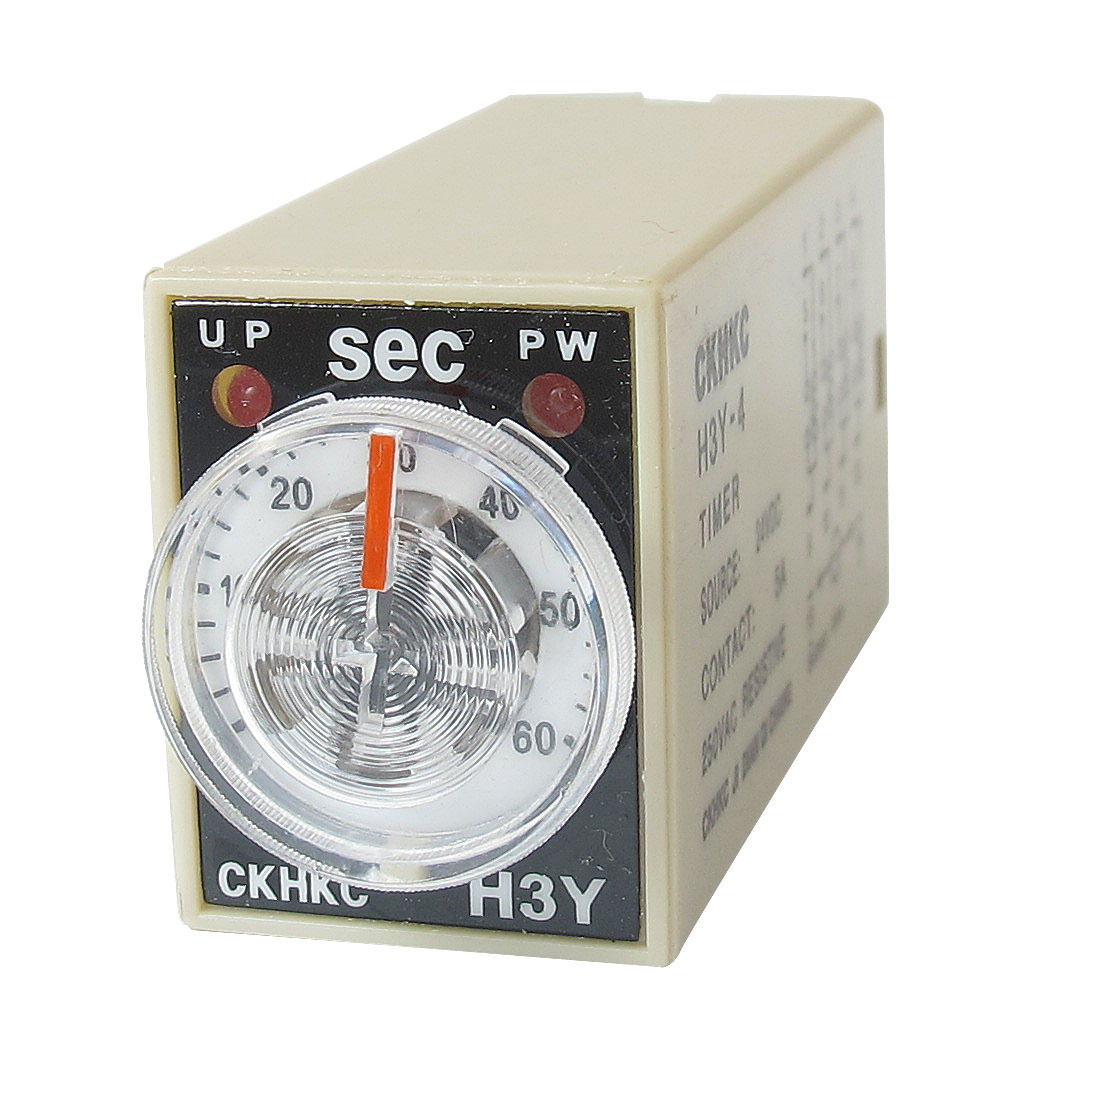 DC 24V 14P Terminals 4PDT 60 Seconds 60S Delay Timing Time Relay H3Y-4